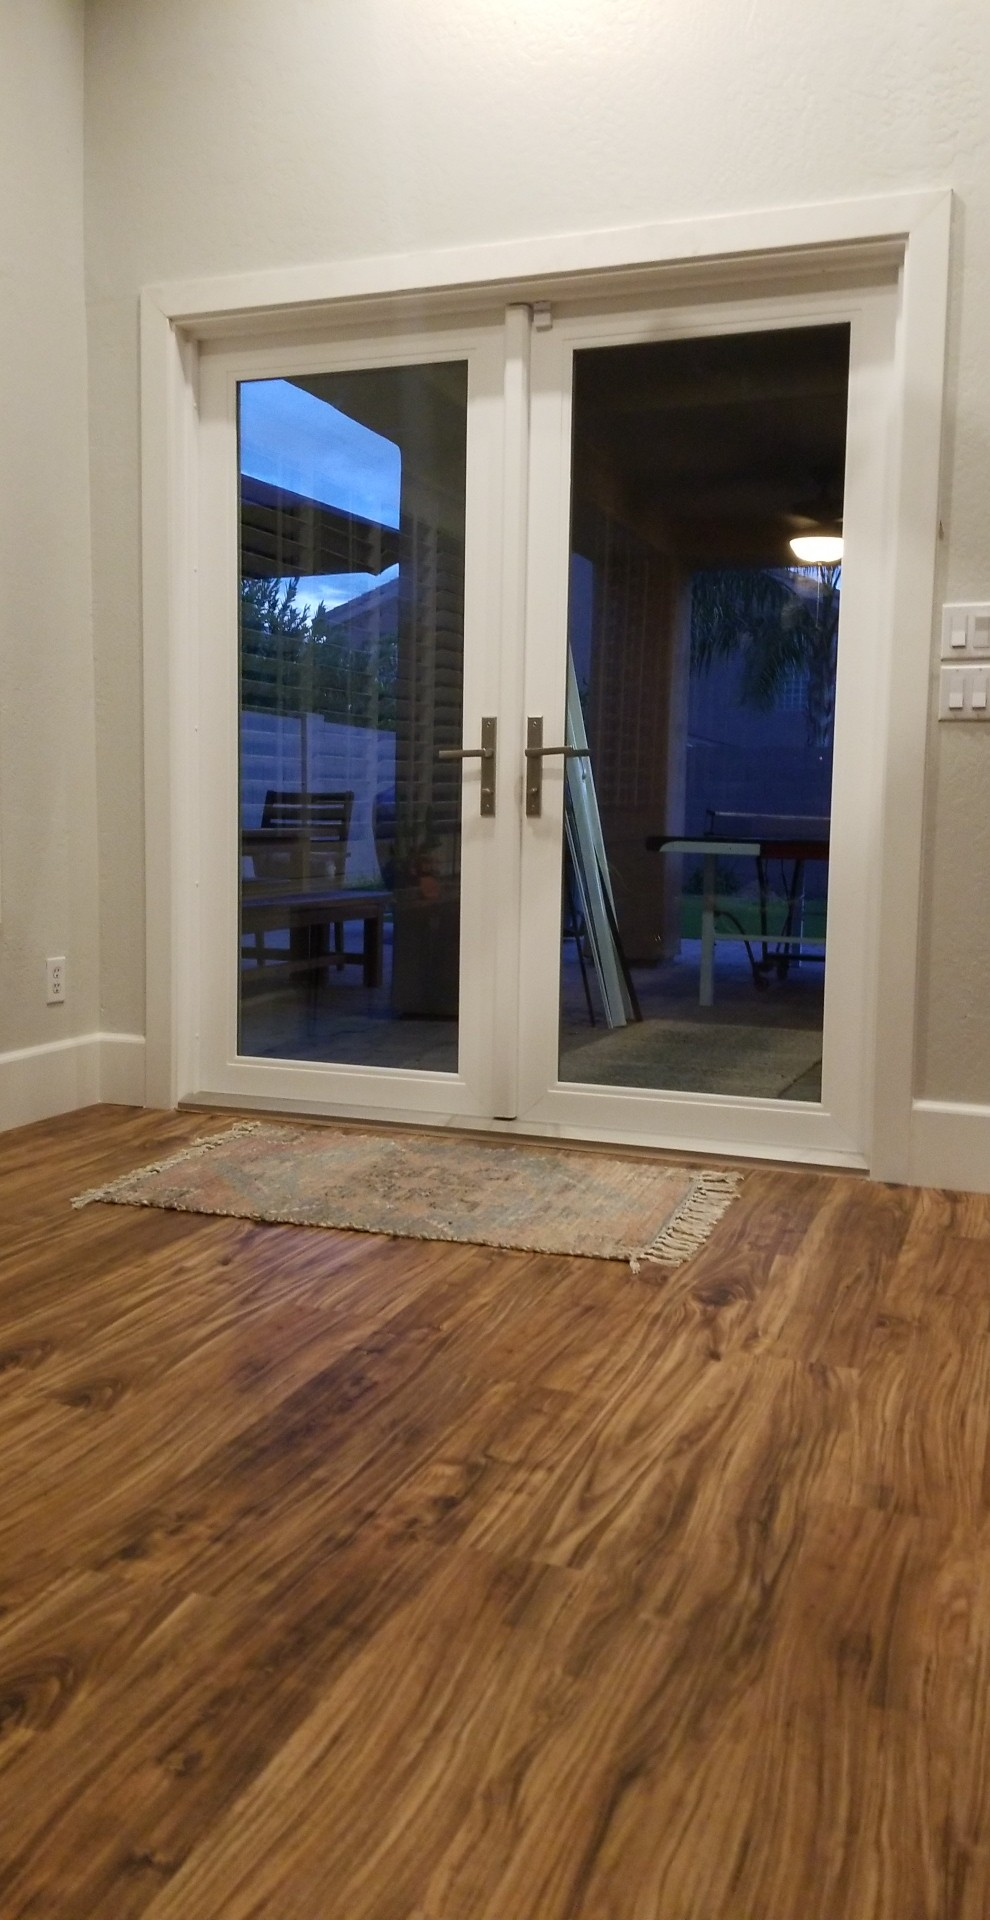 Arizona Window and Door in Scottsdale and Tucson showing french doors with windows